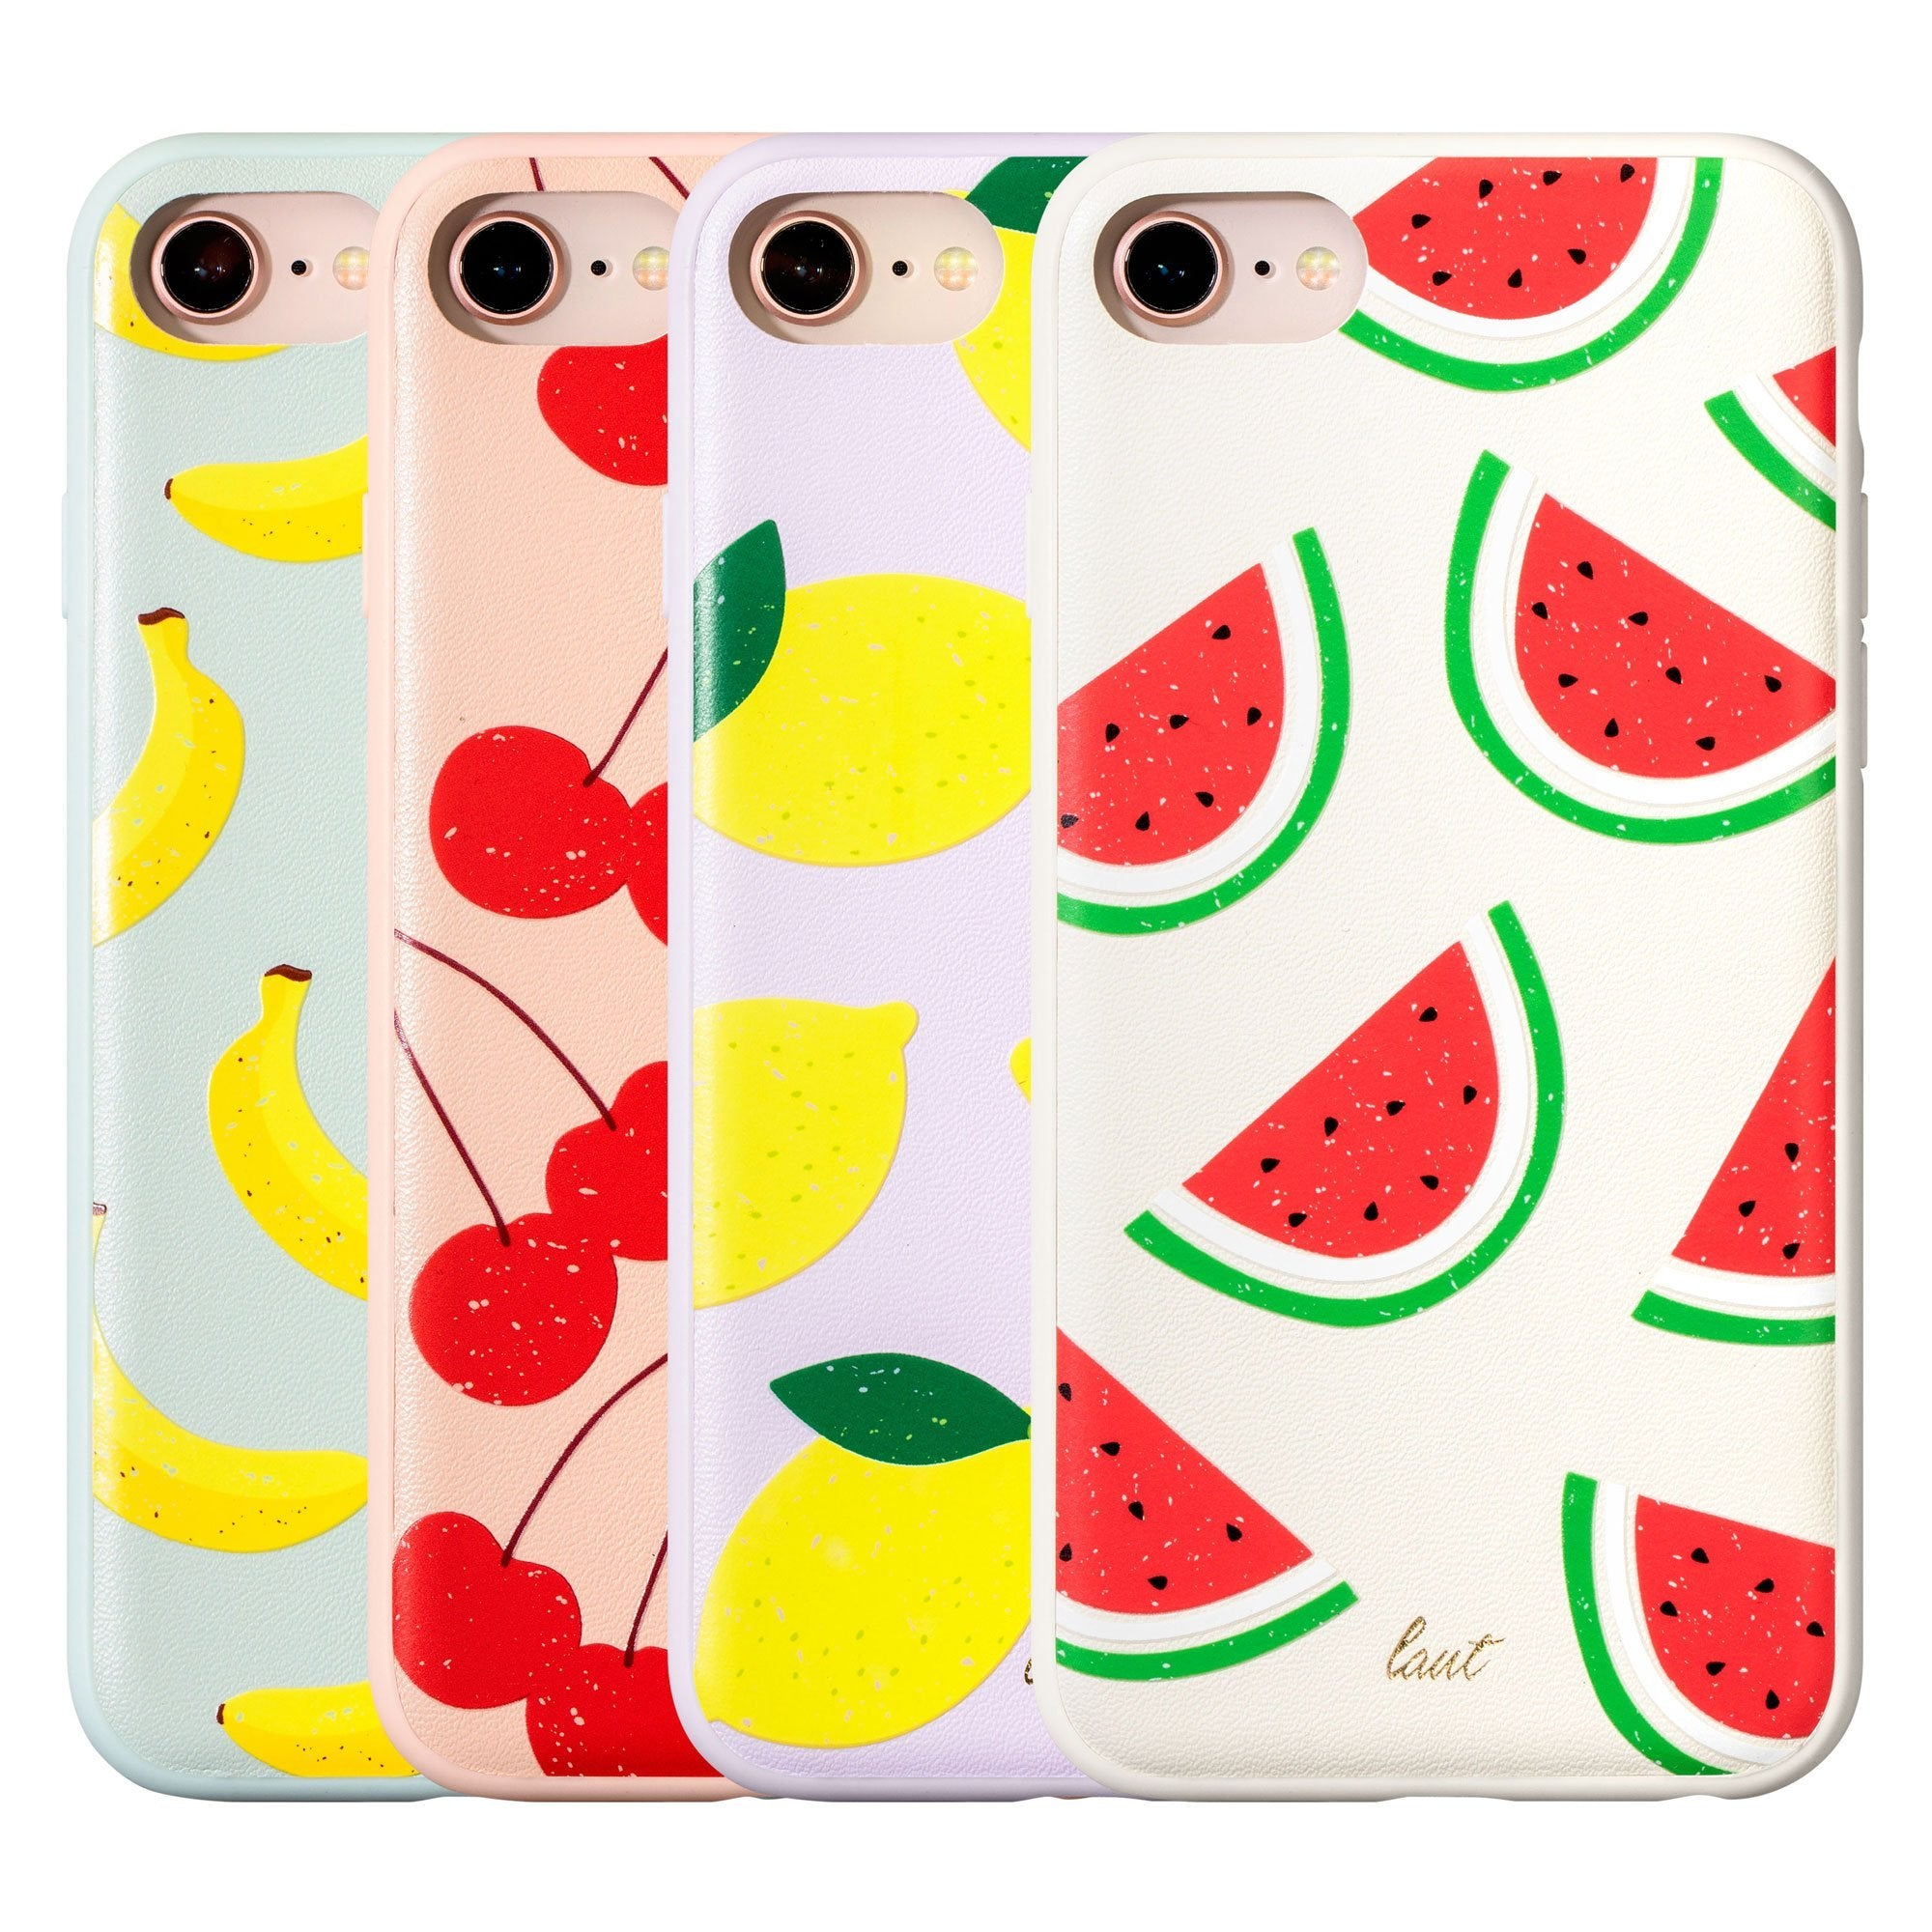 LAUT-TUTTI FRUTTI case for iPhone SE 2020 / iPhone 8/7/6-Case-For iPhone SE 2020/8/7/6